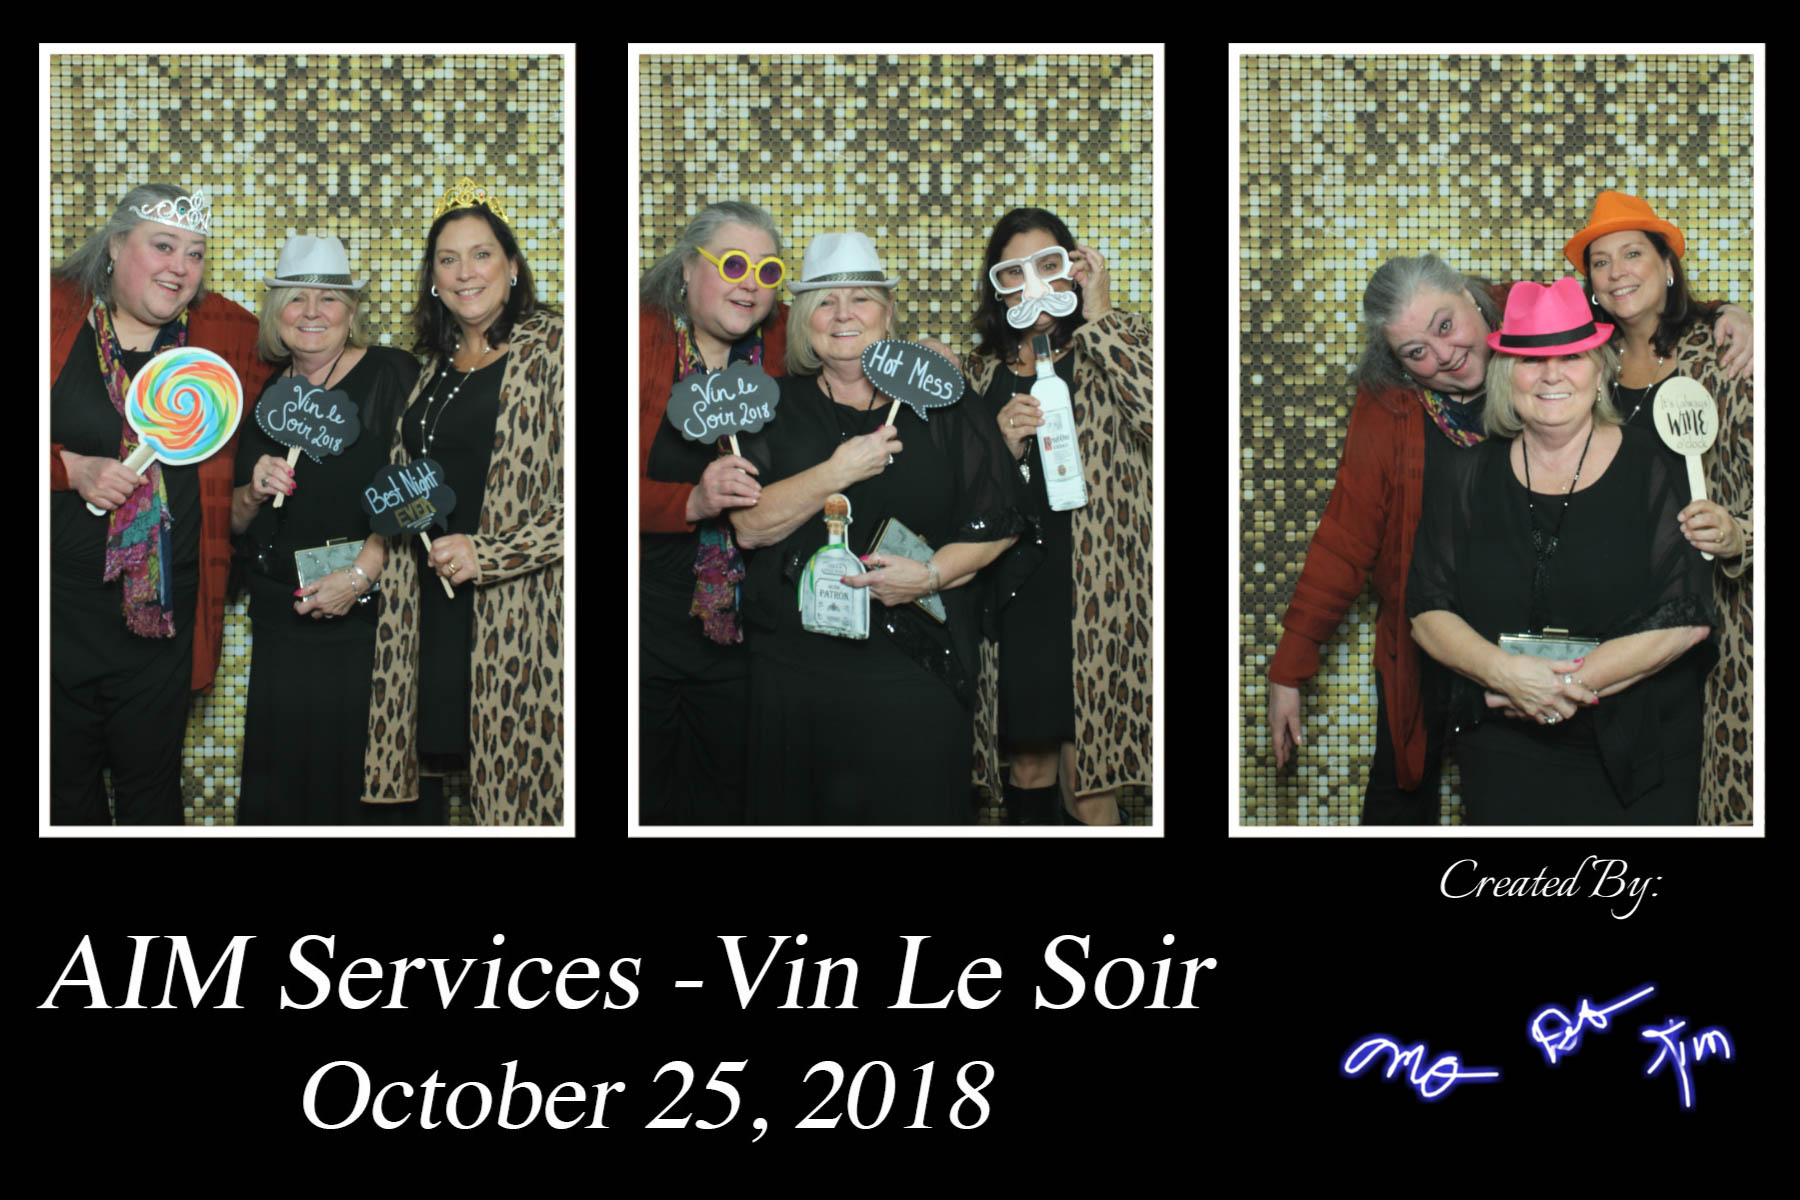 Vin Le Soir to benefit AIM Services, Inc. photo booth picture